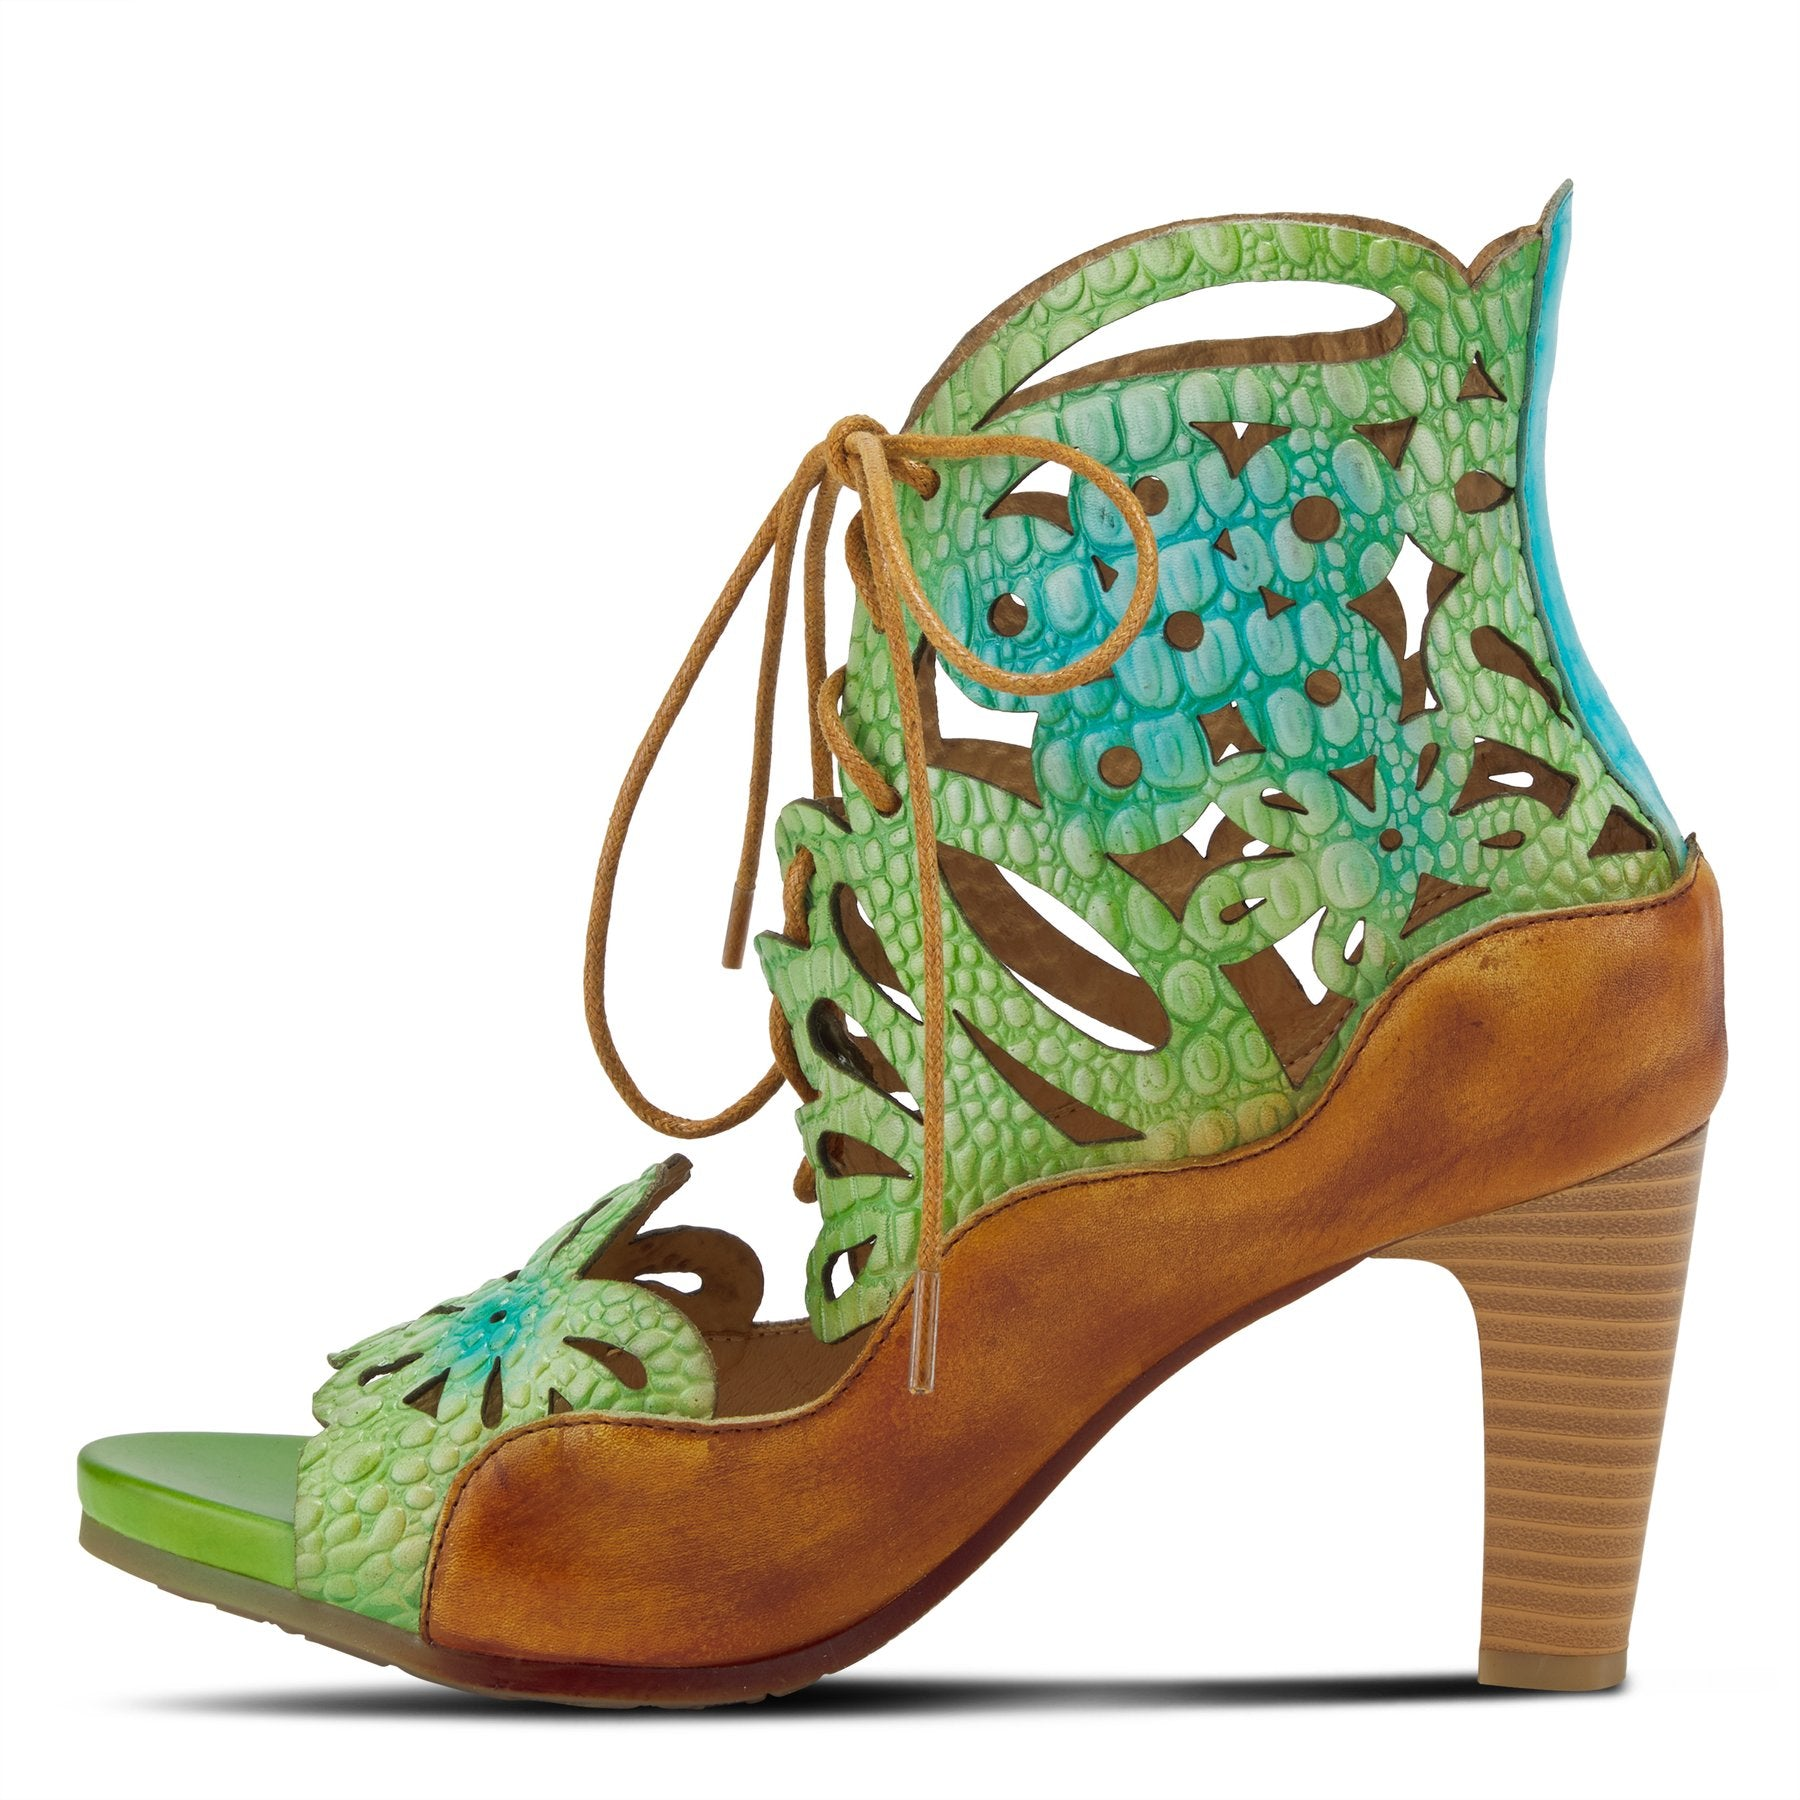 Inner view of the l'artiste osocool sandal. This sandal is an open toe high heel with green and blue floral cutouts through out the upper. The upper goes up to the ankle and has a lace up closure. The sandal also features tan edging.